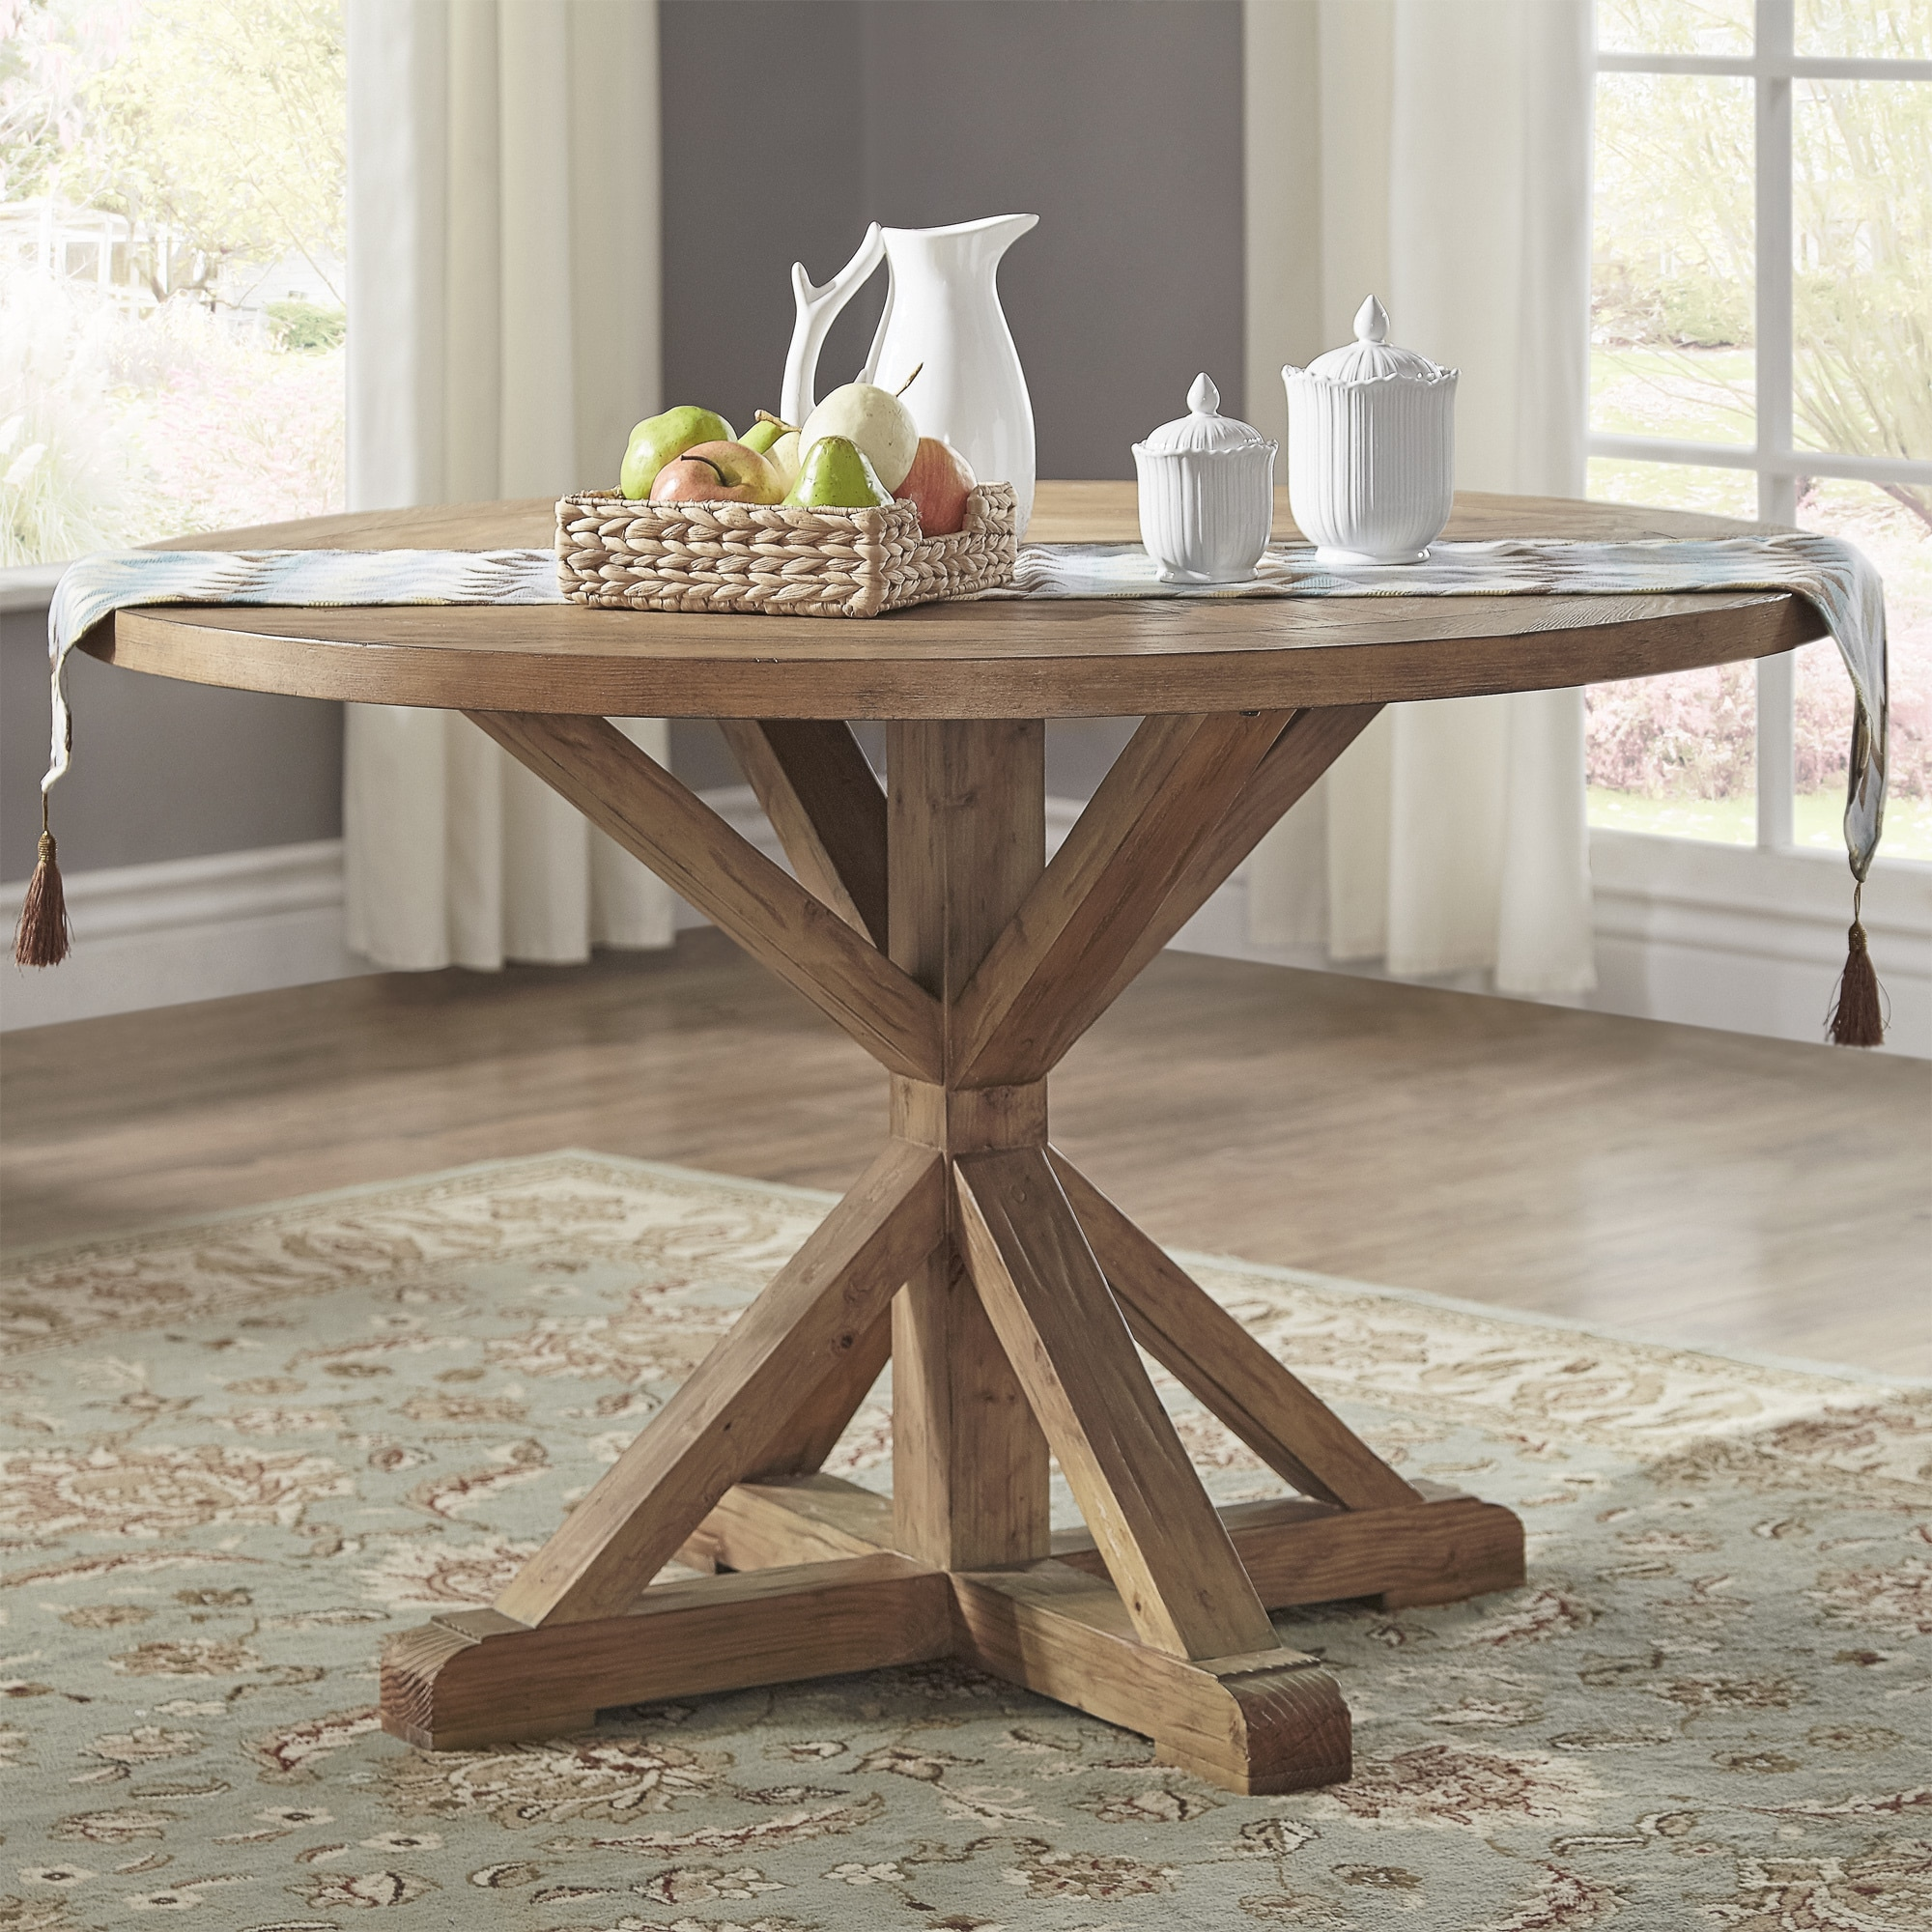 Shop Benchwright Rustic X Base 48 Inch Round Dining Table Set By INSPIRE Q Artisan